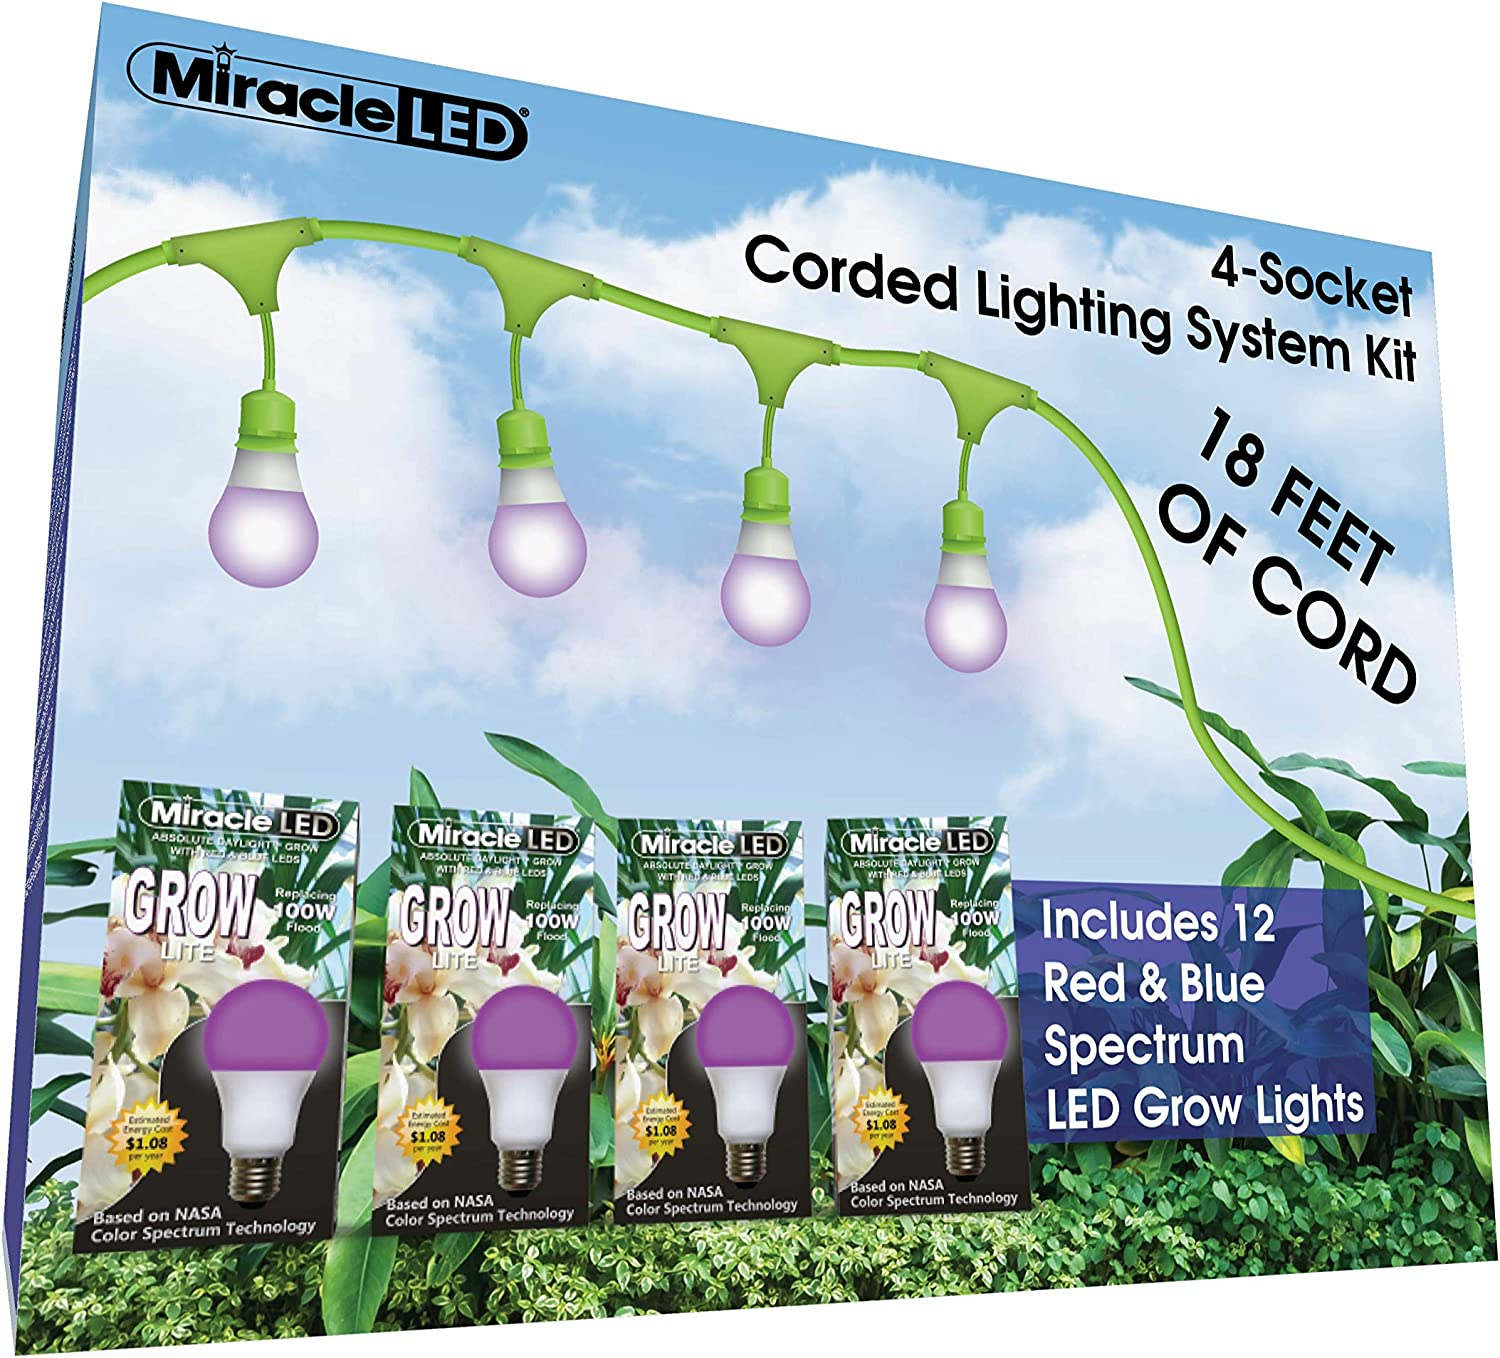 Miracle LED 602848 18ft Corded System Kit with 12 Red & Blue Spectrum Grow Lights